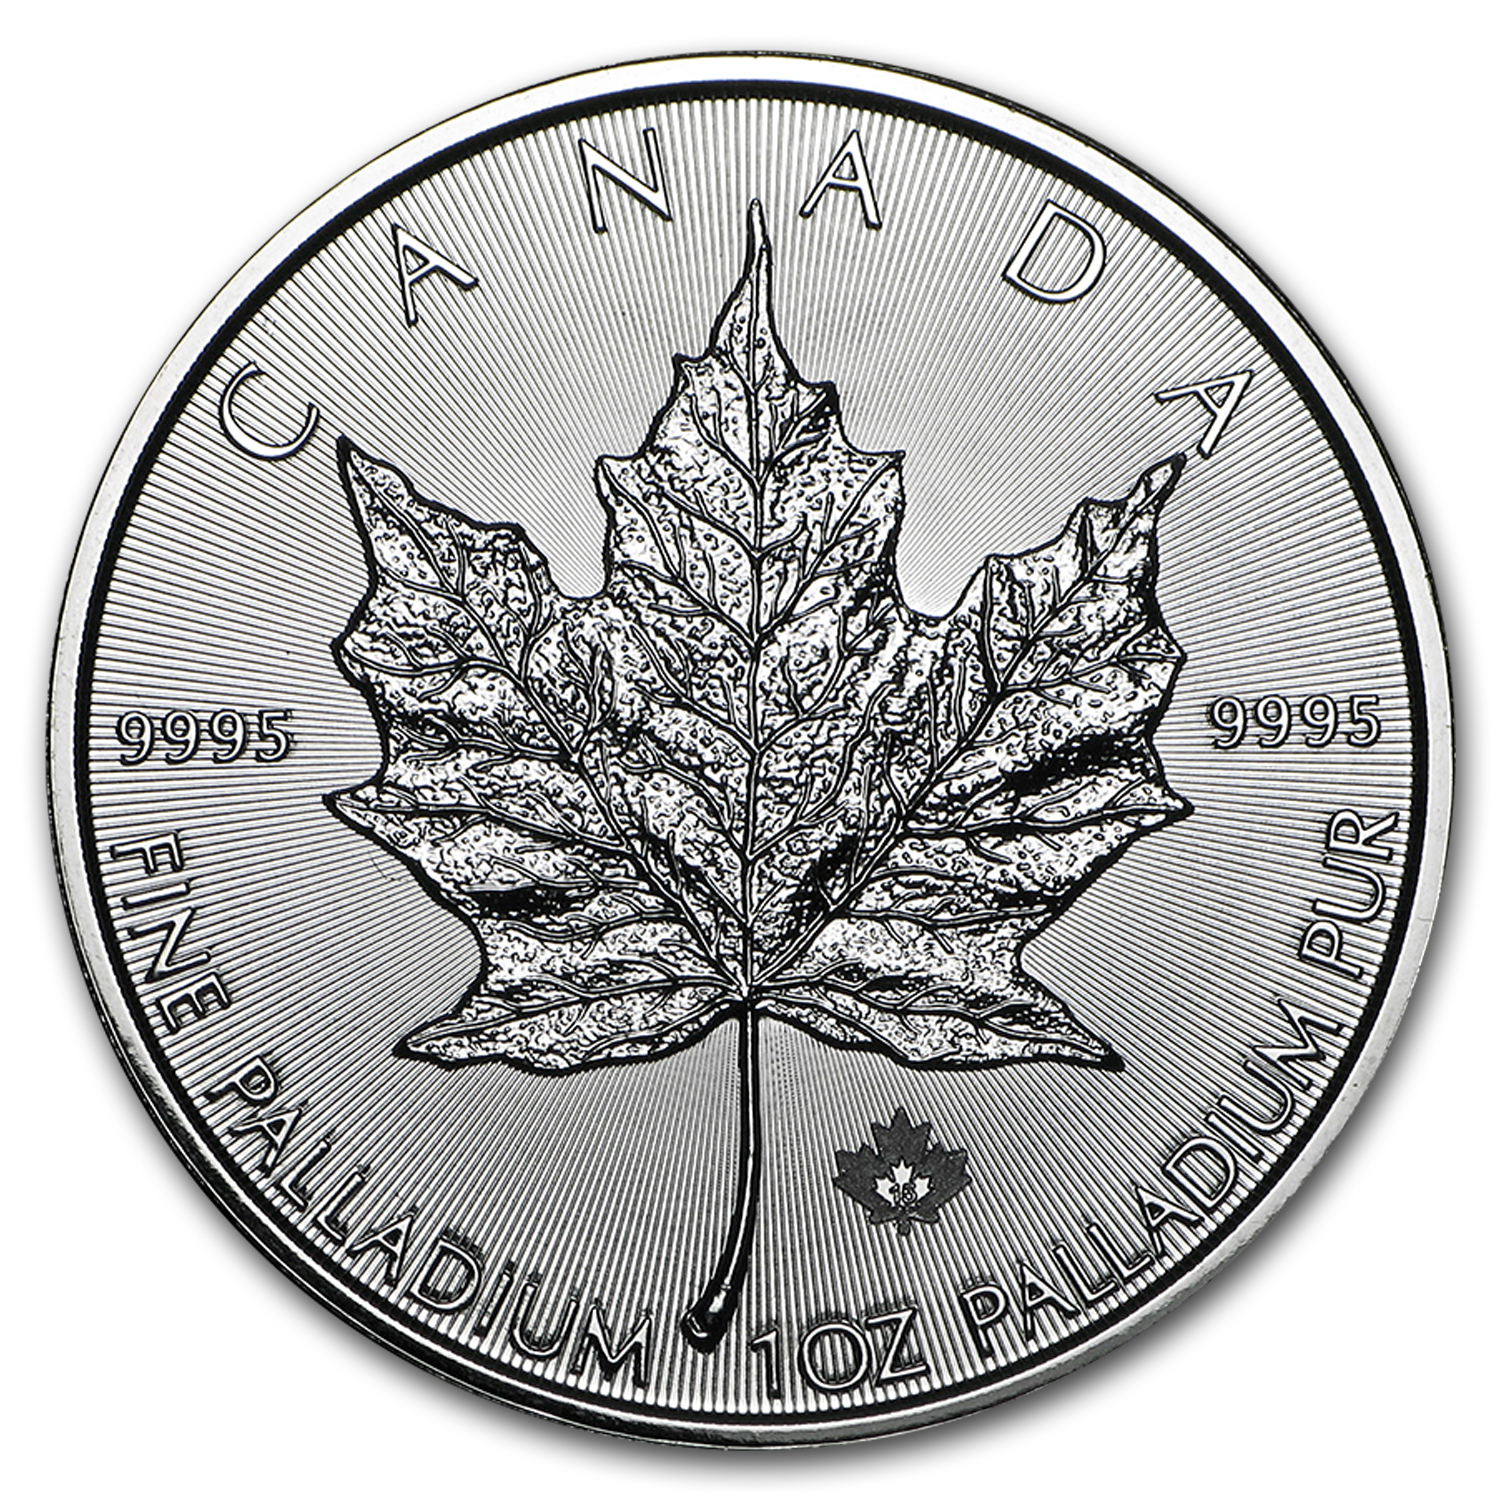 2015 Canada 1 oz Palladium Maple Leaf BU